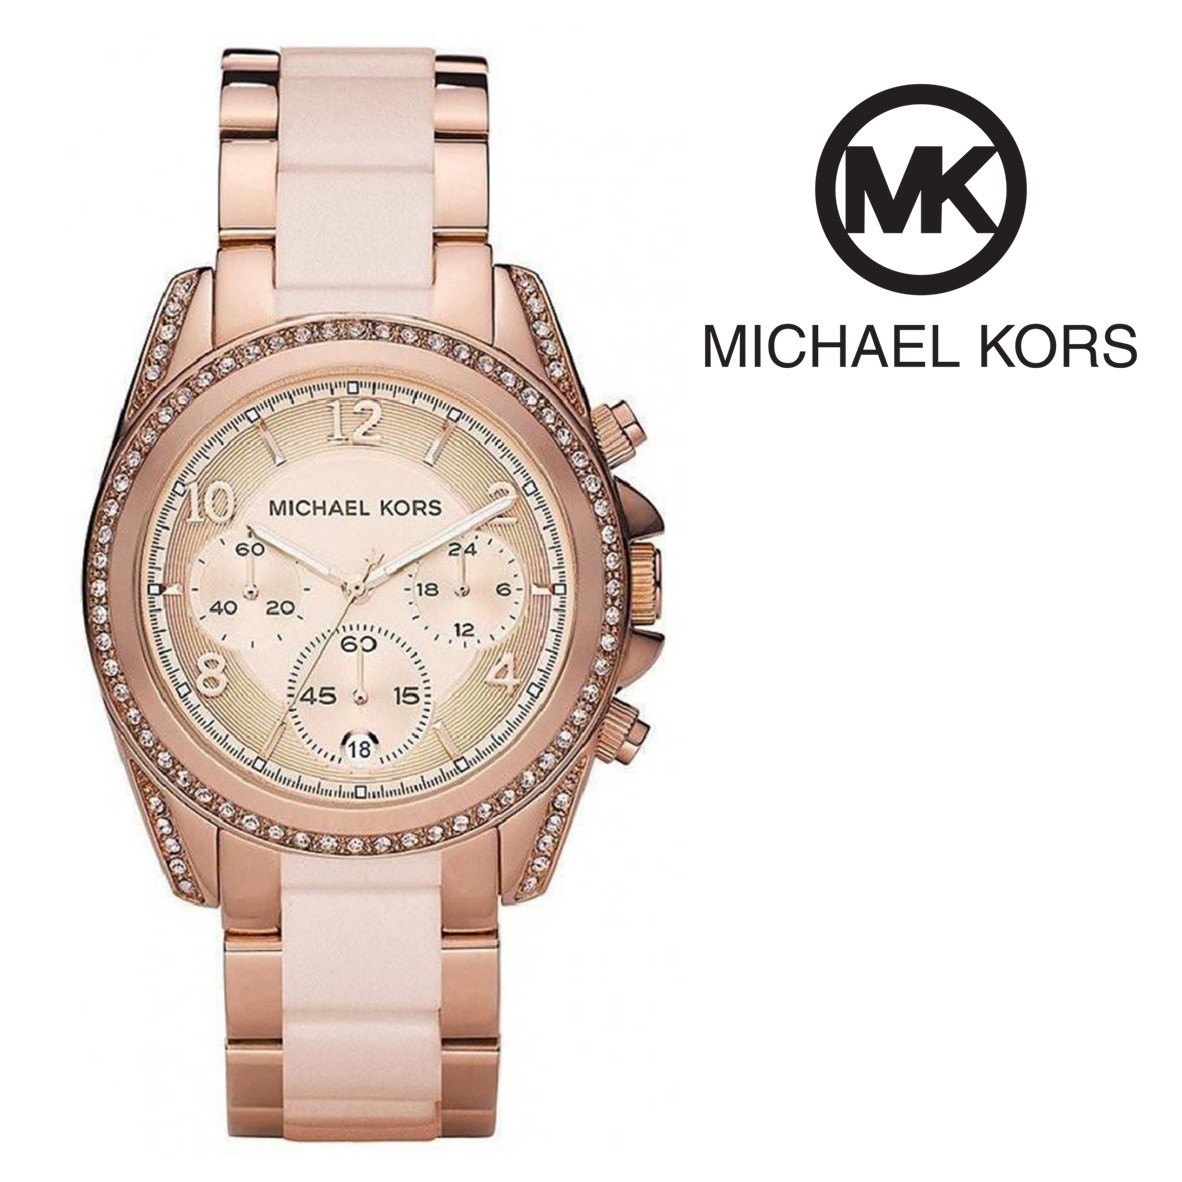 Relógio Michael Kors® Blair Chronograph   10ATM - You Like It 382f9c260e